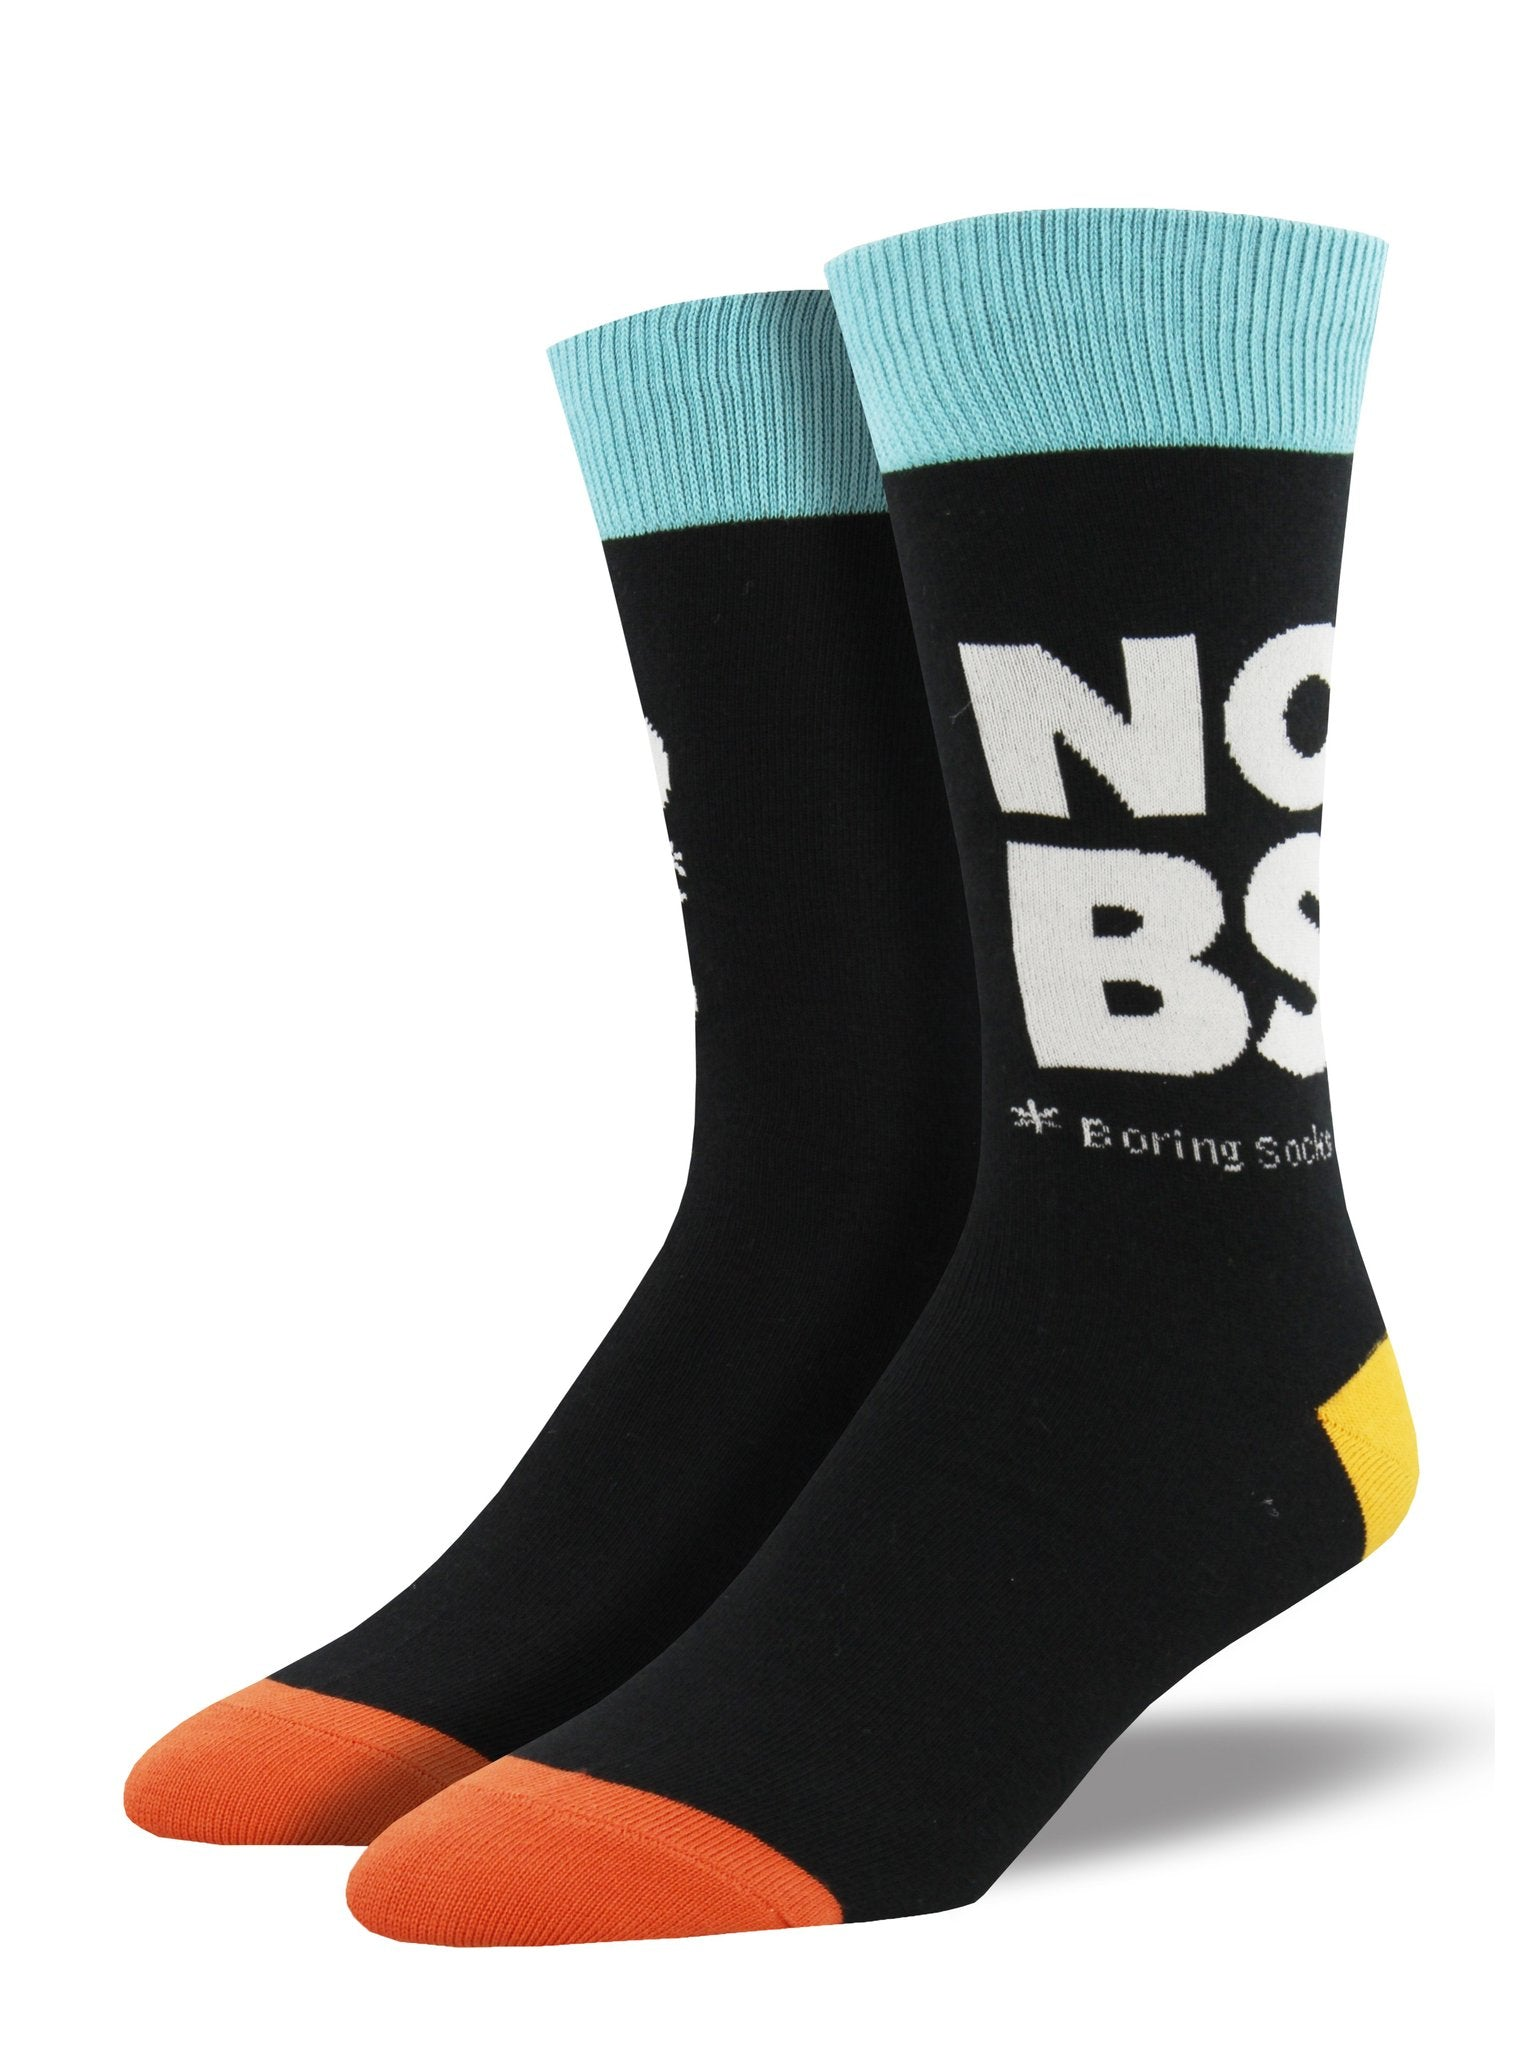 Men's No Boring Socks Crew